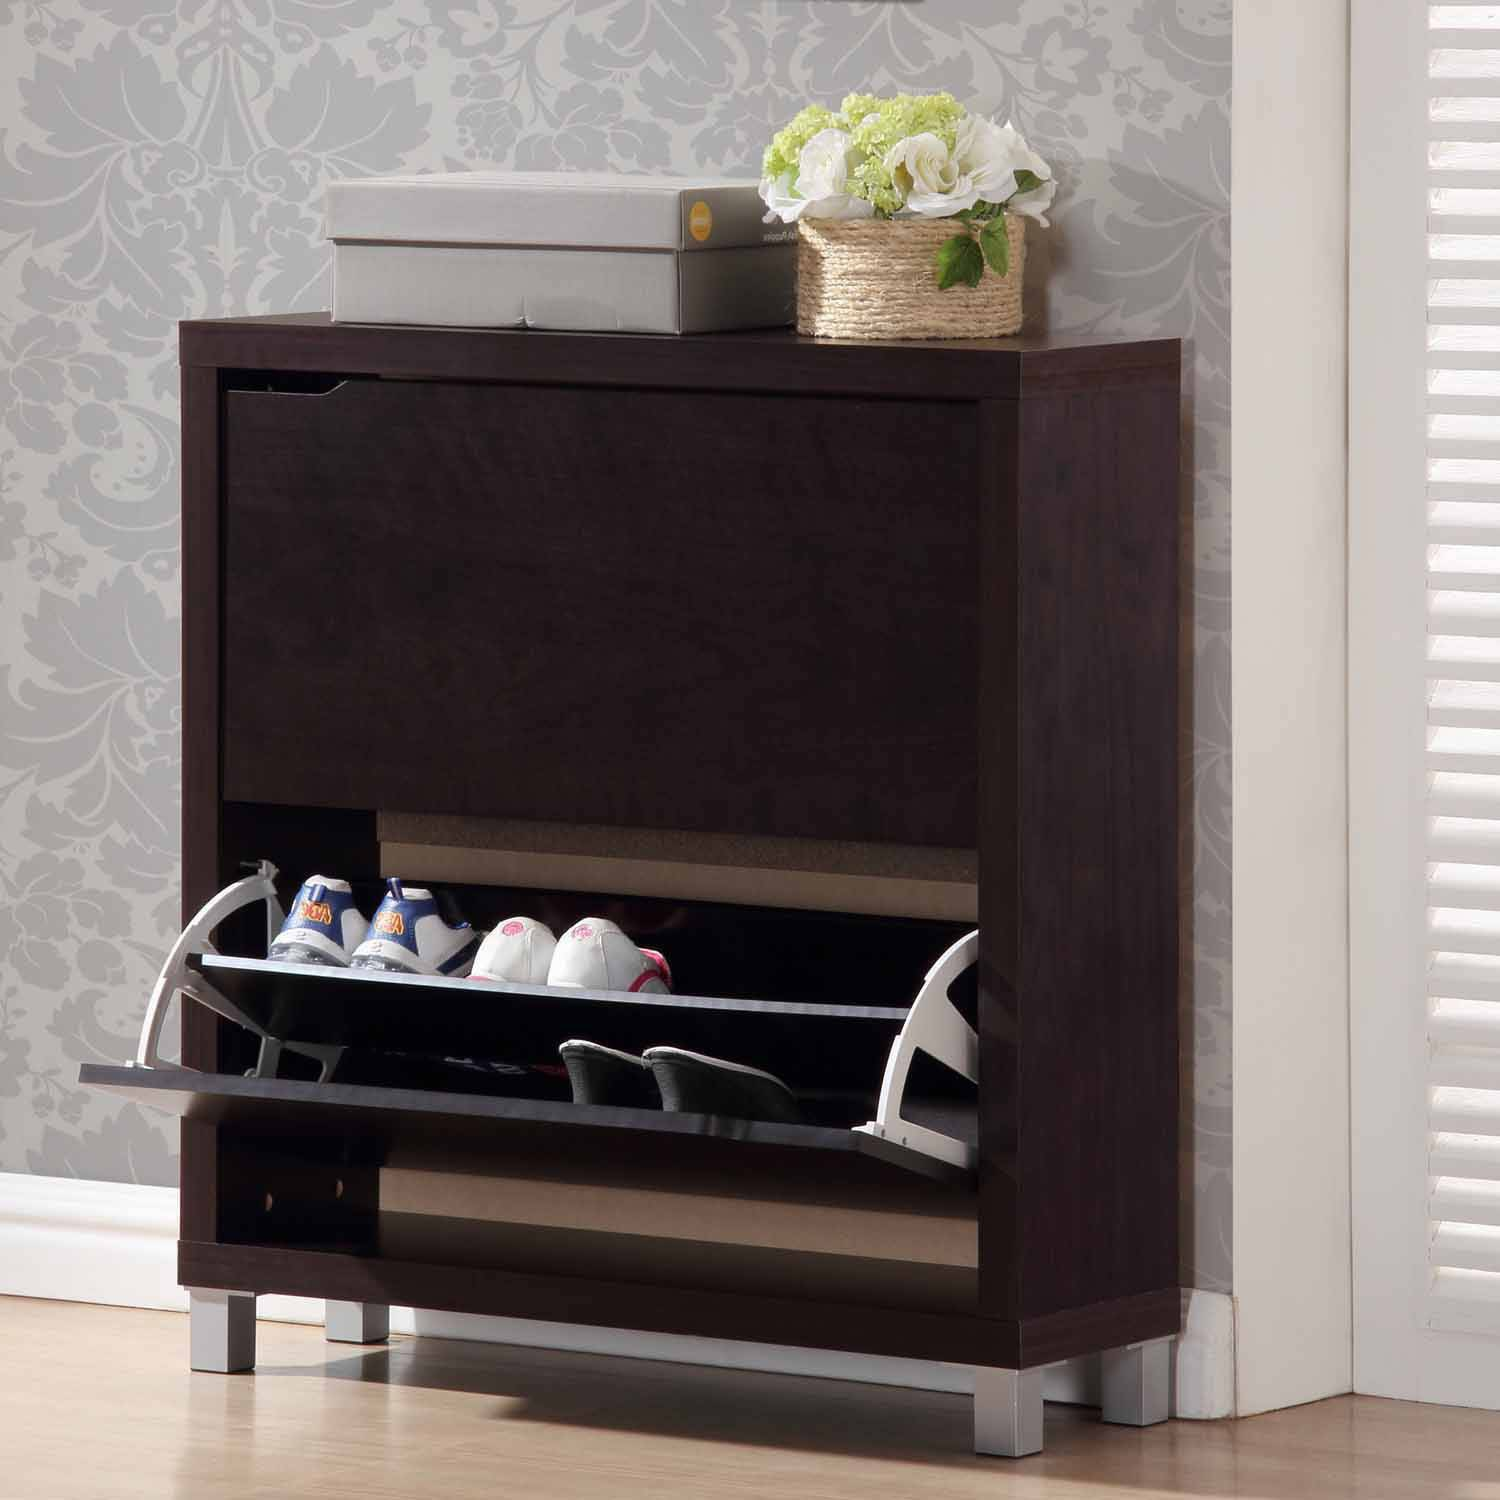 Simms 2 Storage Modern Shoe Cabinet, Multiple Colors